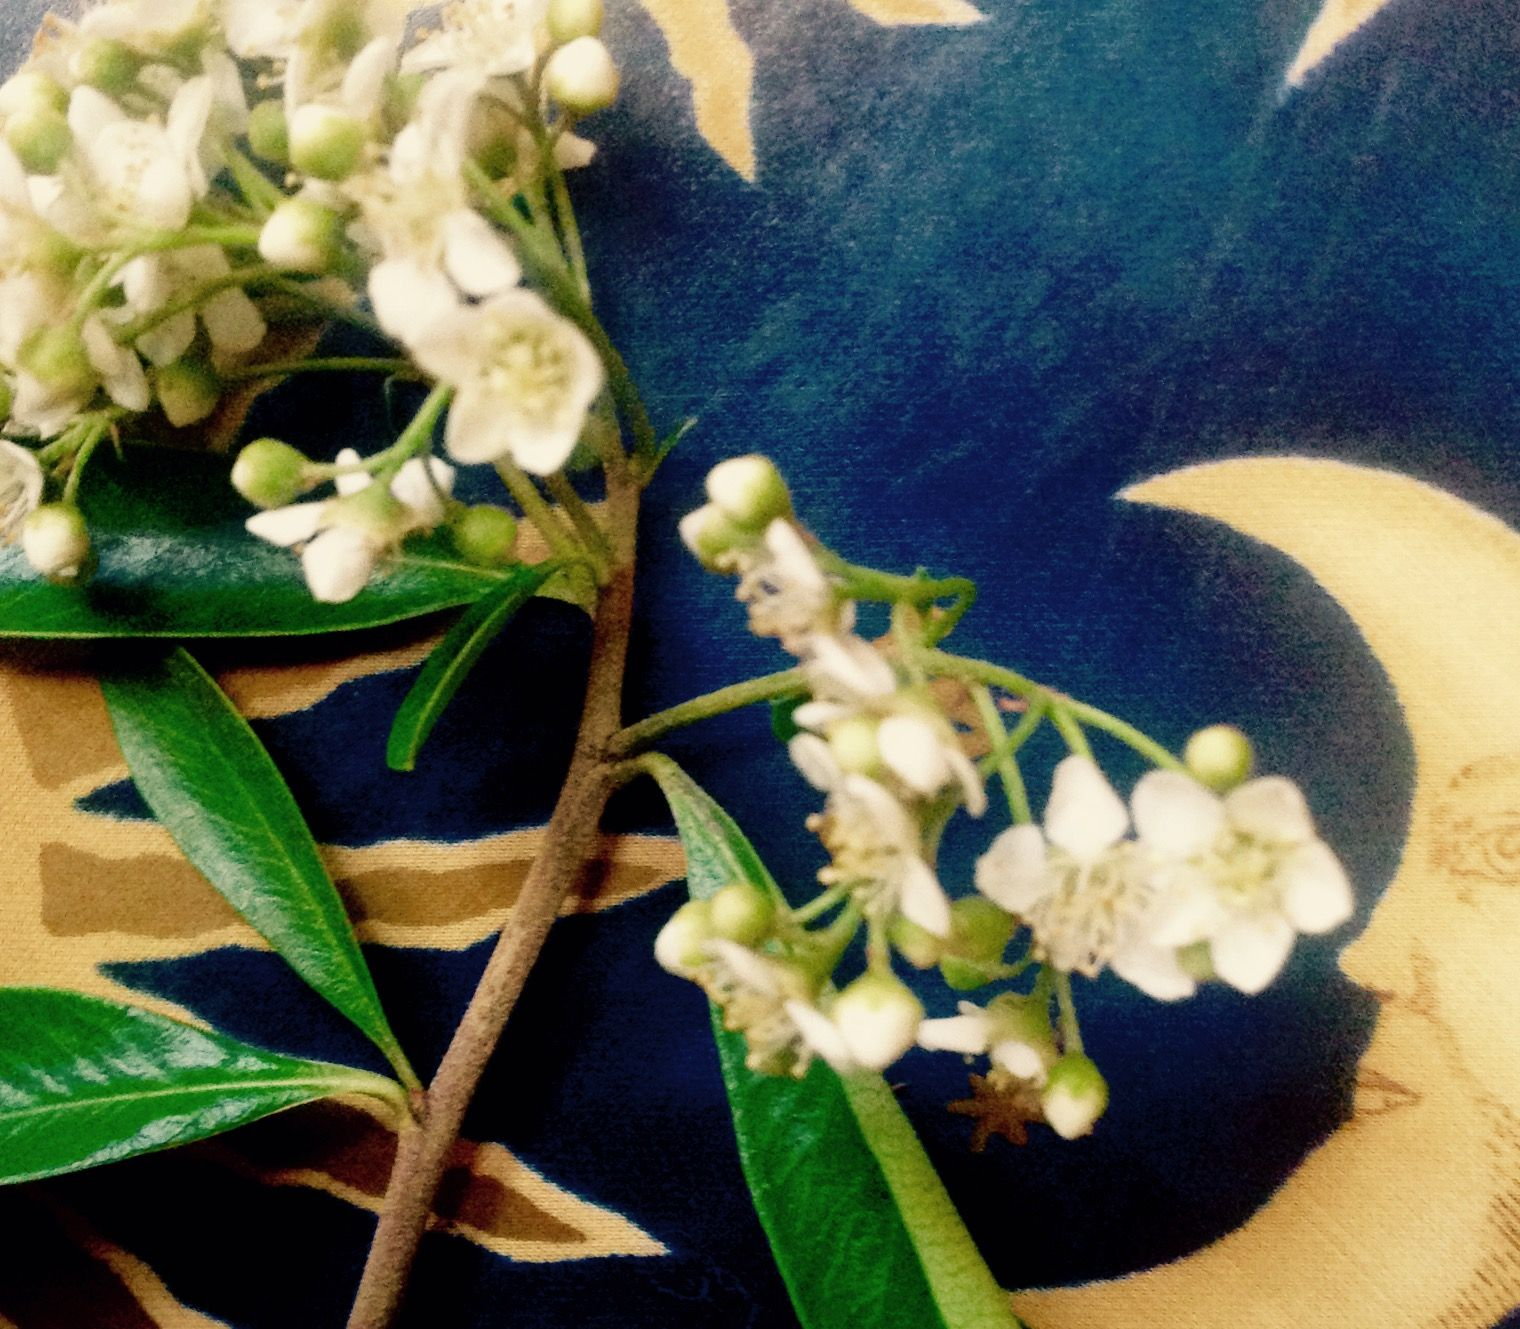 They Smell Like Tilapia Cute White Flowers From An Old Growth Bush